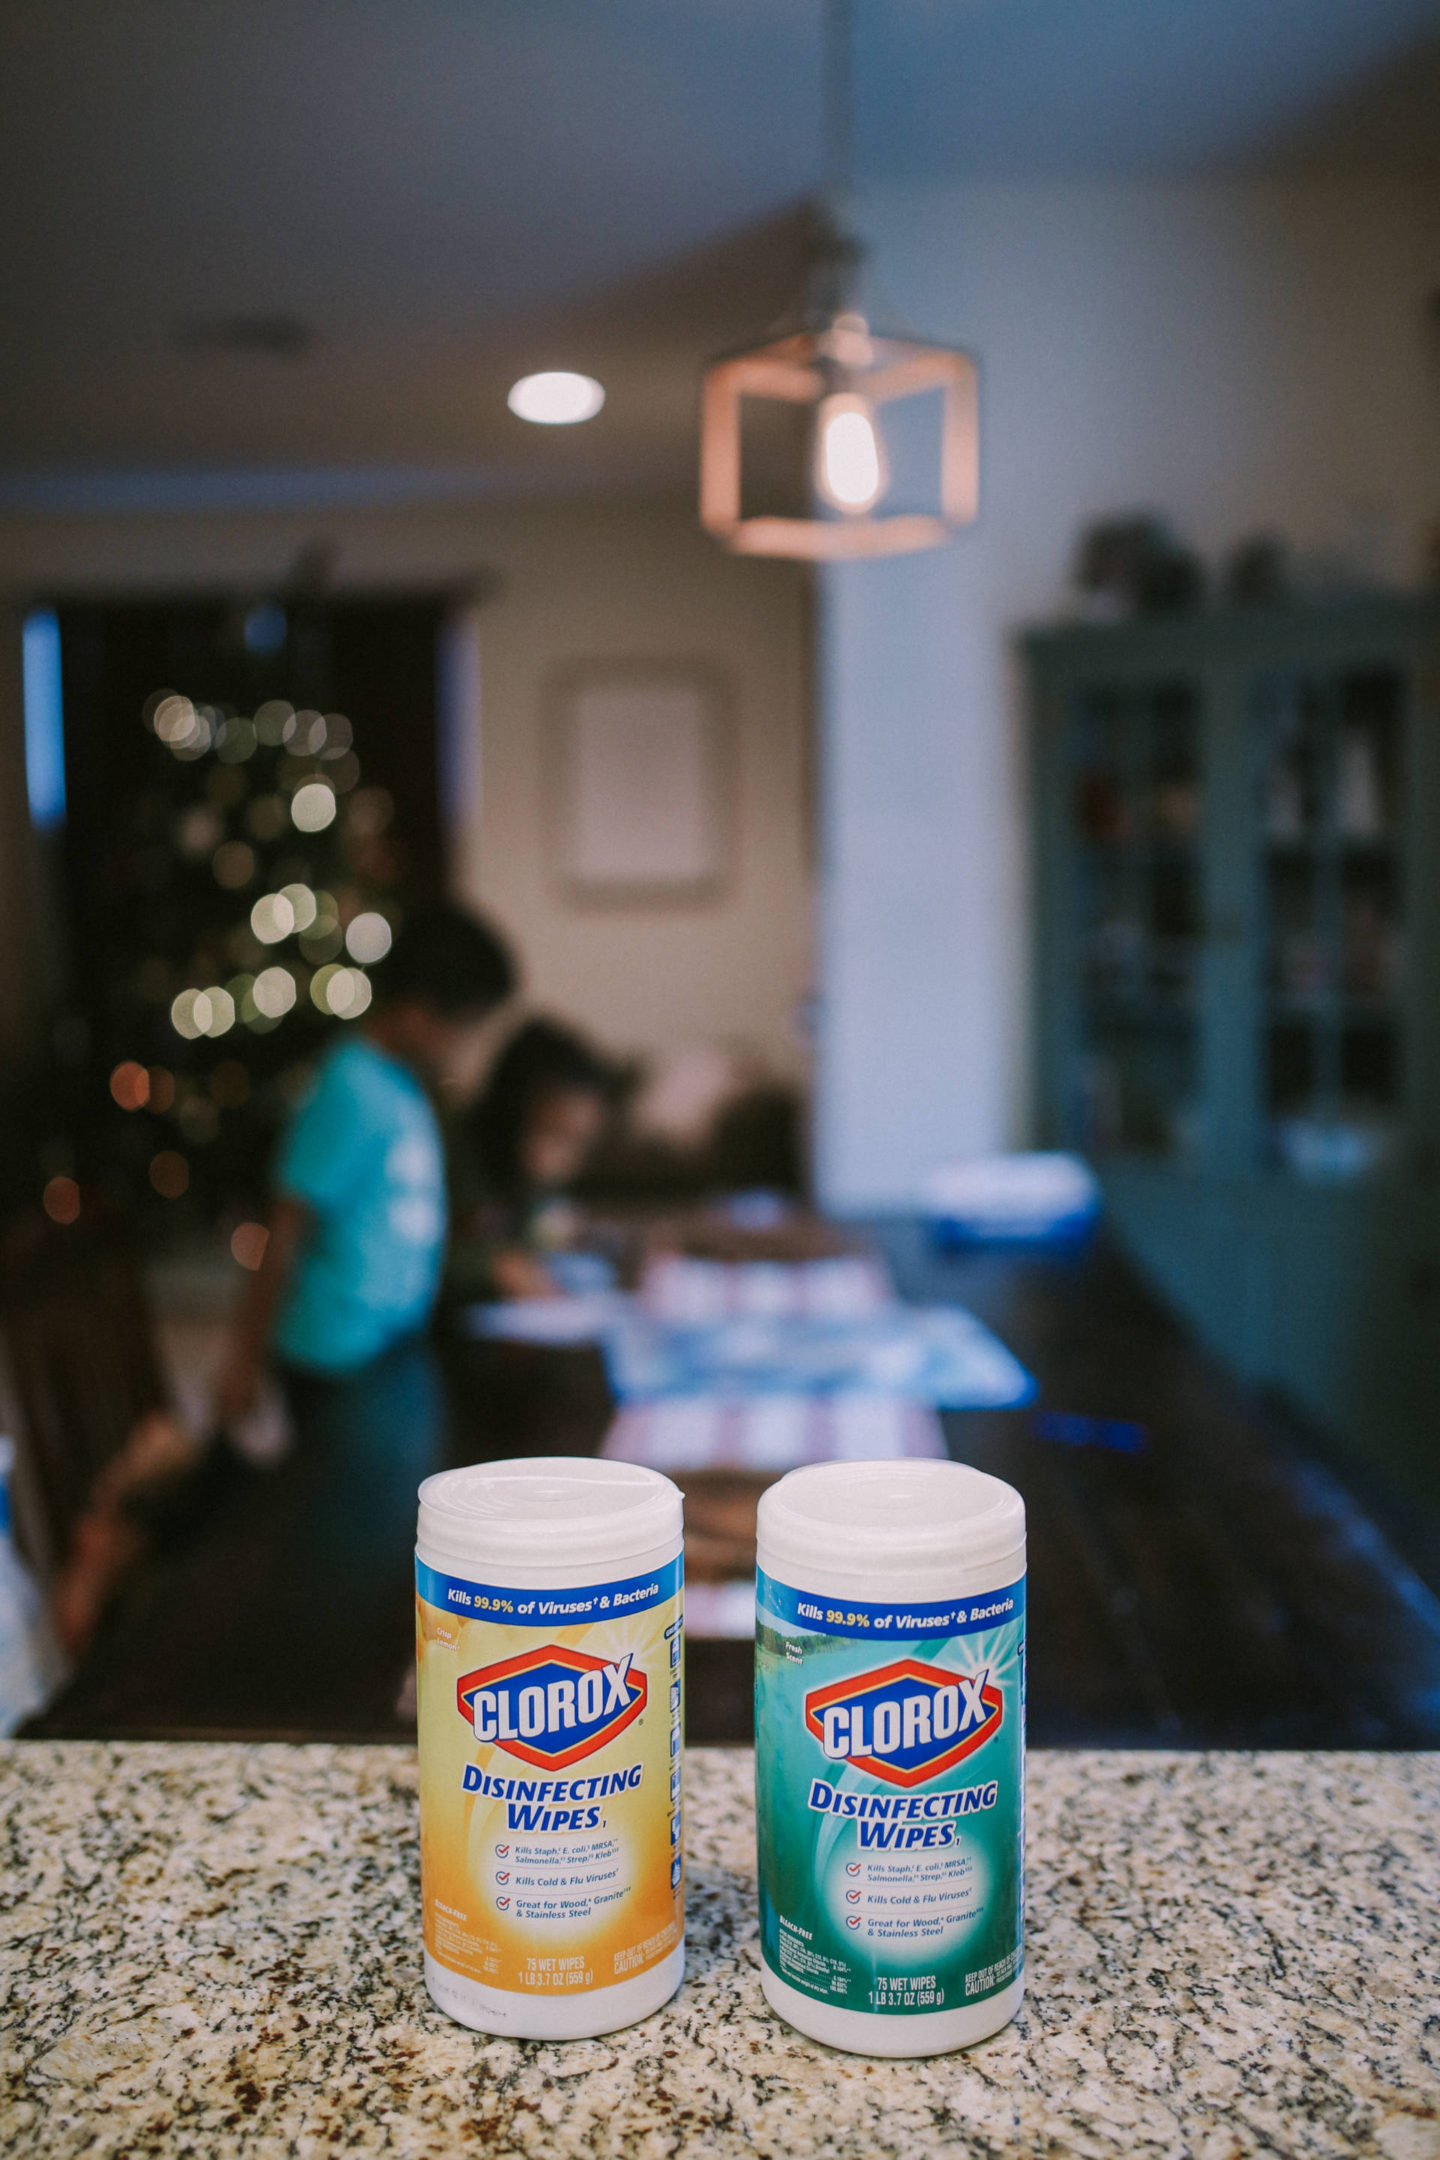 Ruthie Ridley Blog: Cold and Flu Season With Clorox